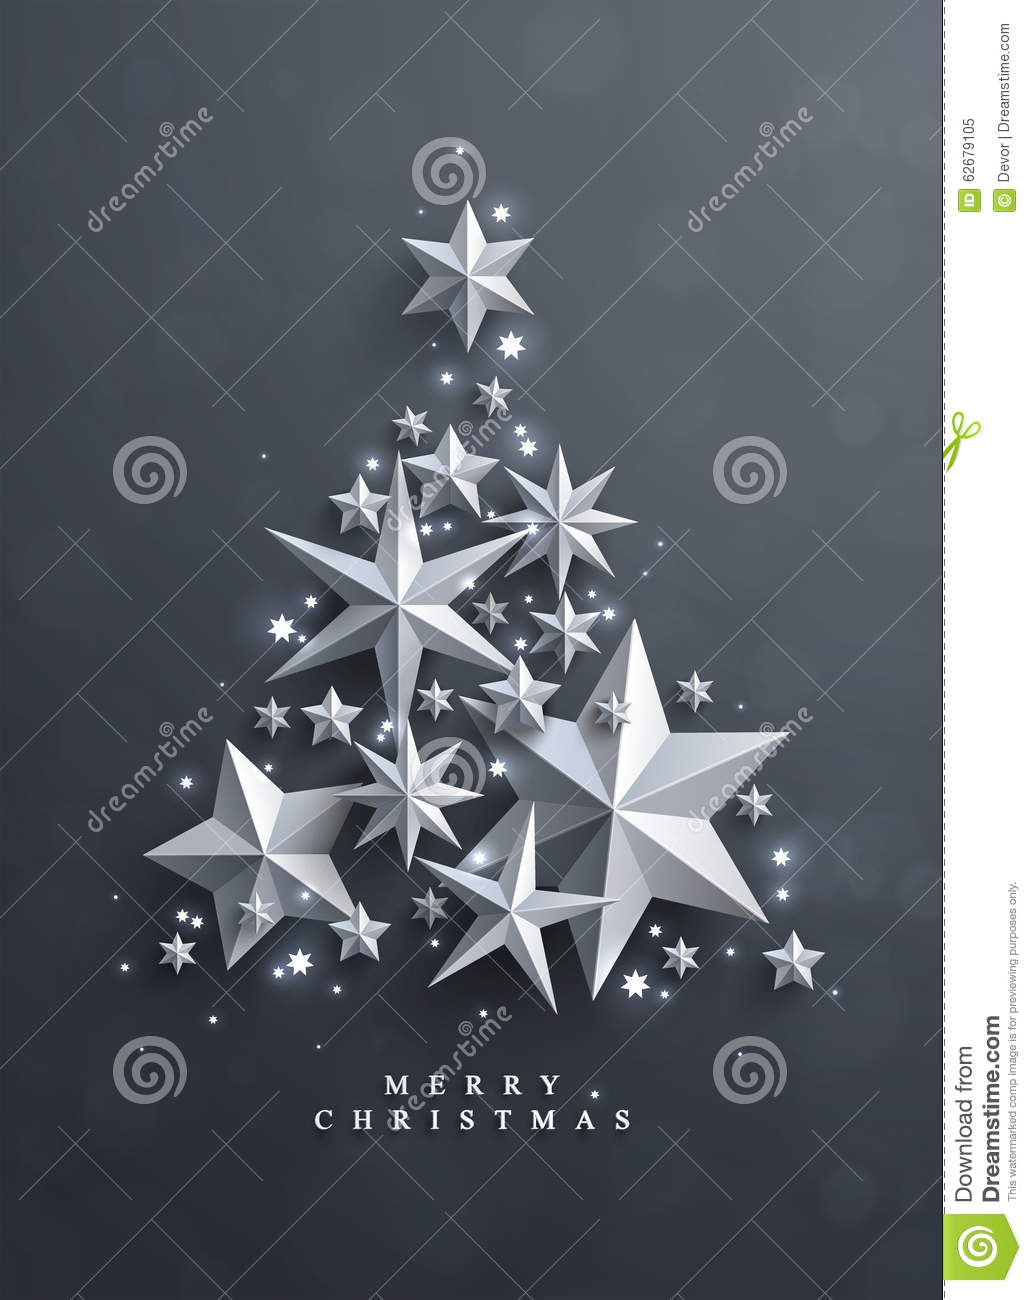 Christmas and New Years background with frame made of stars